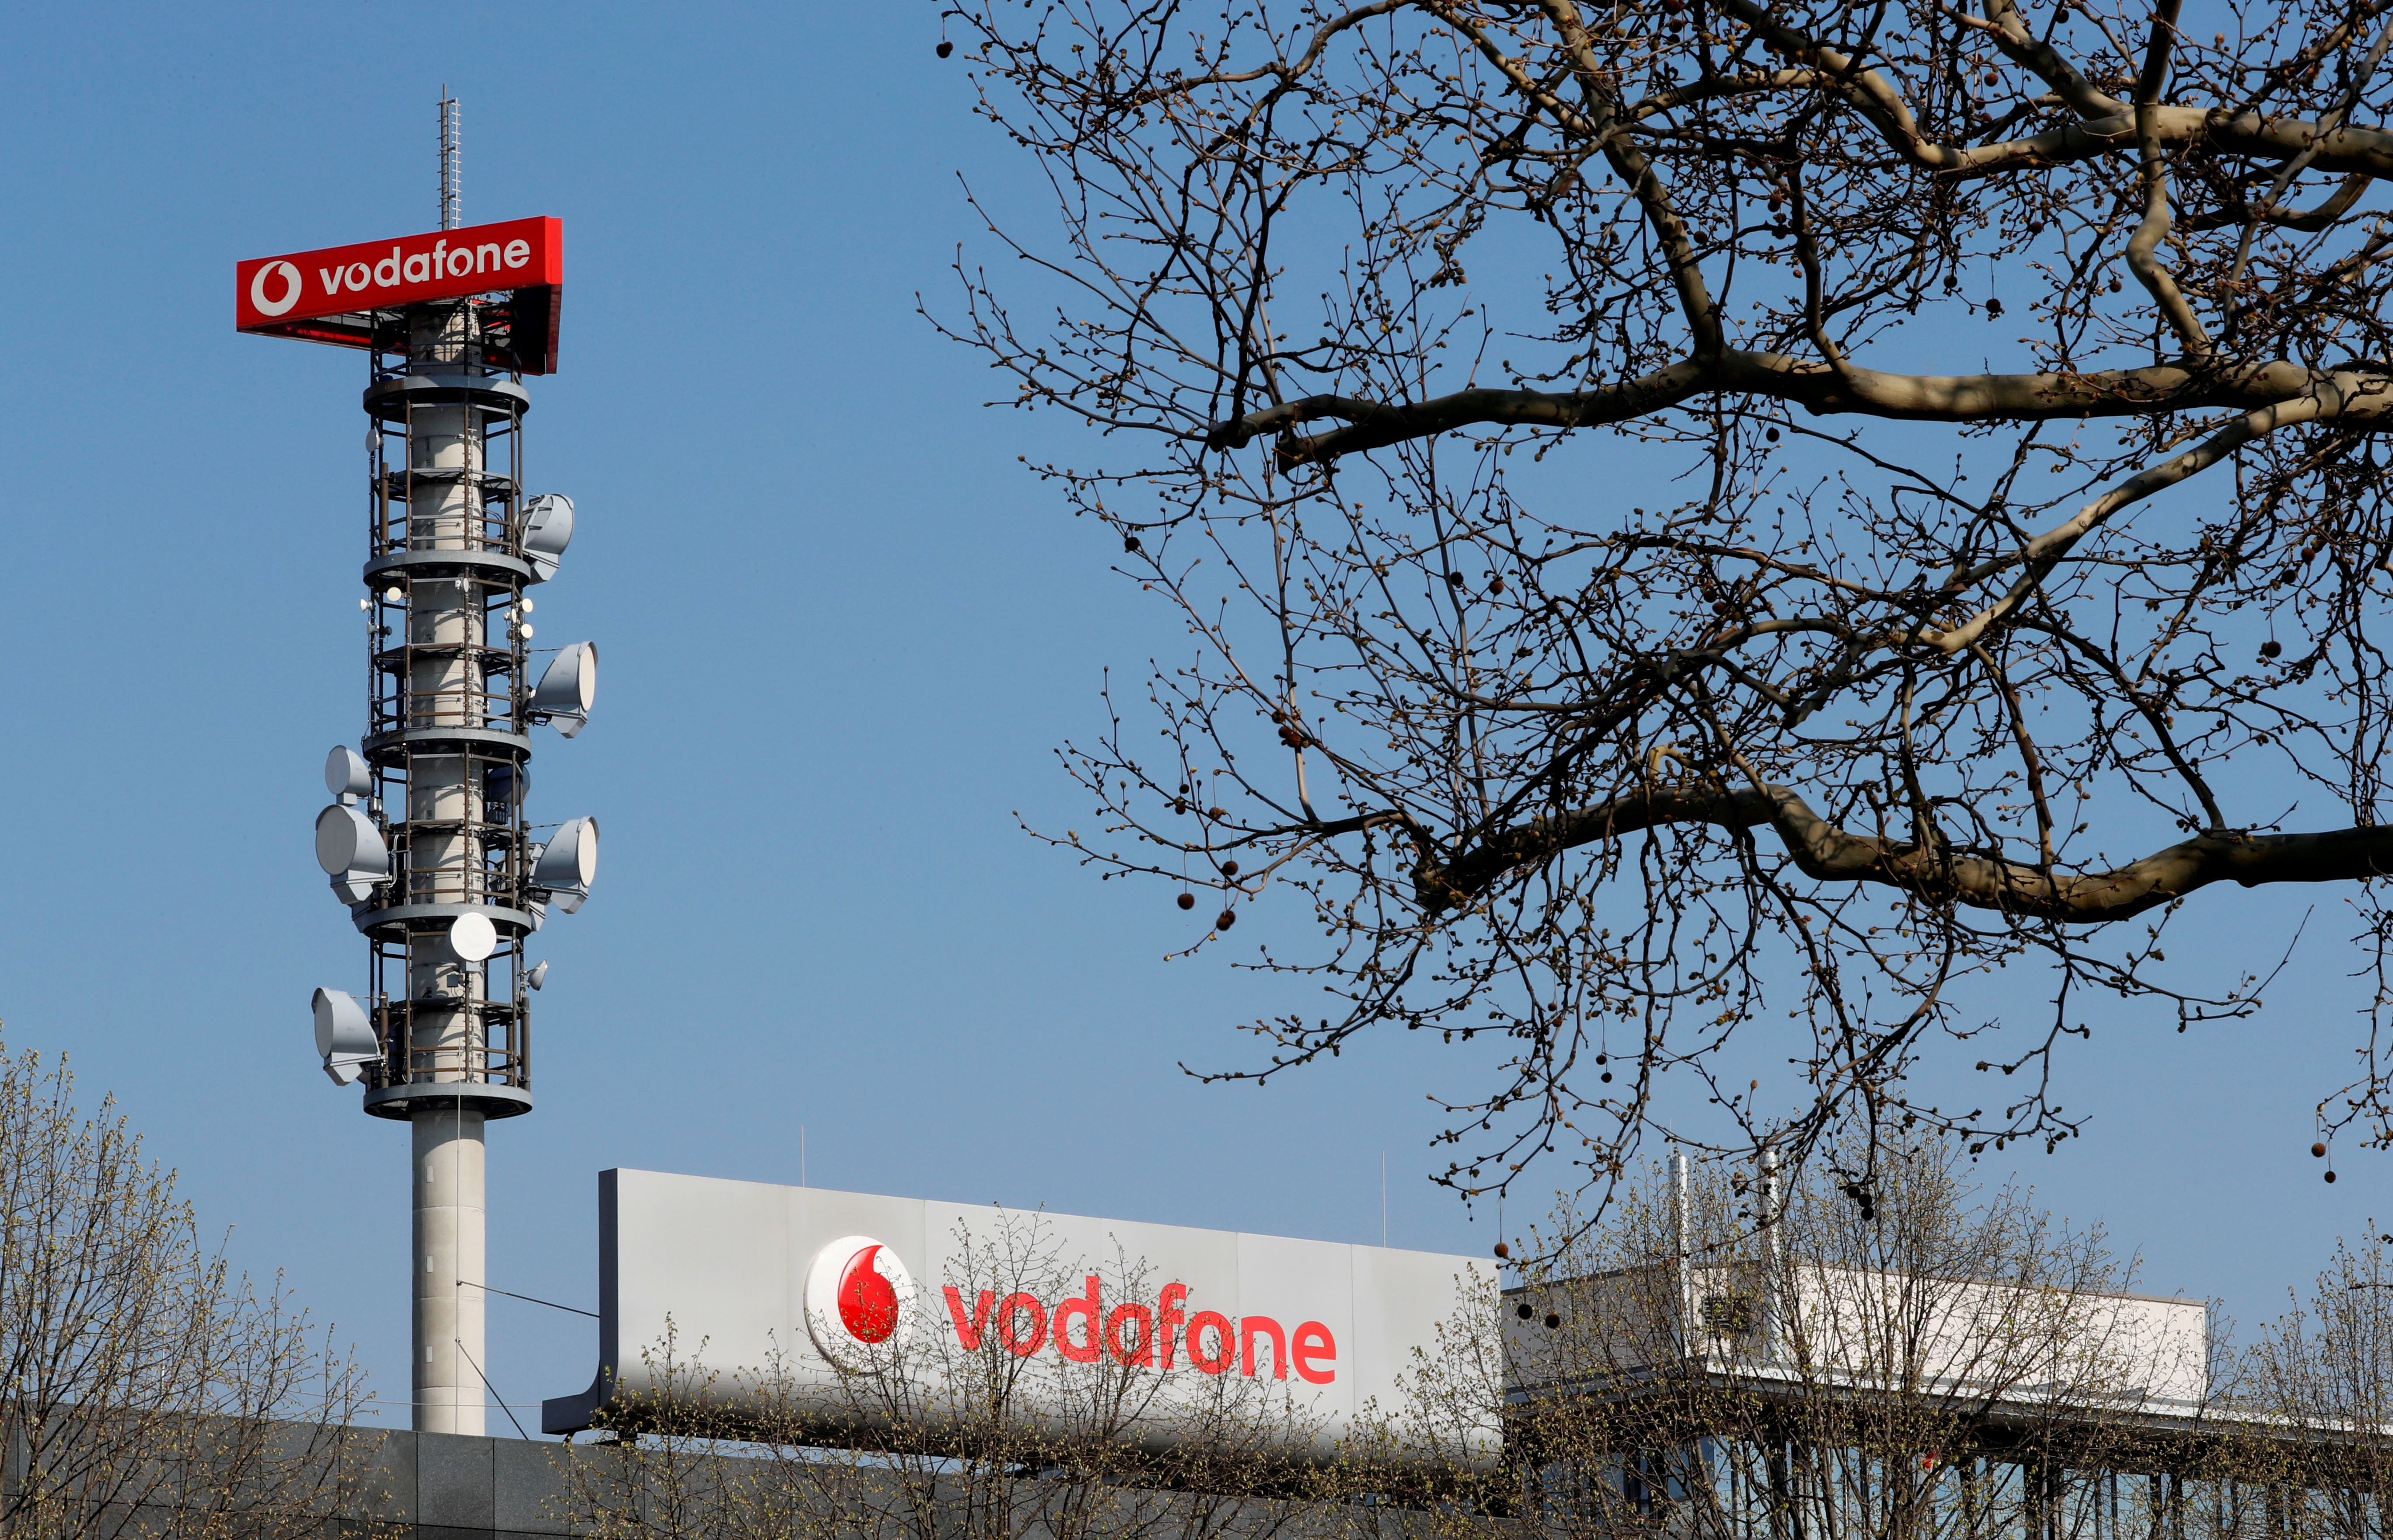 A relay mast operated by Vodafone in Berlin, Germany April 8, 2019. REUTERS/Fabrizio Bensch/File Photo